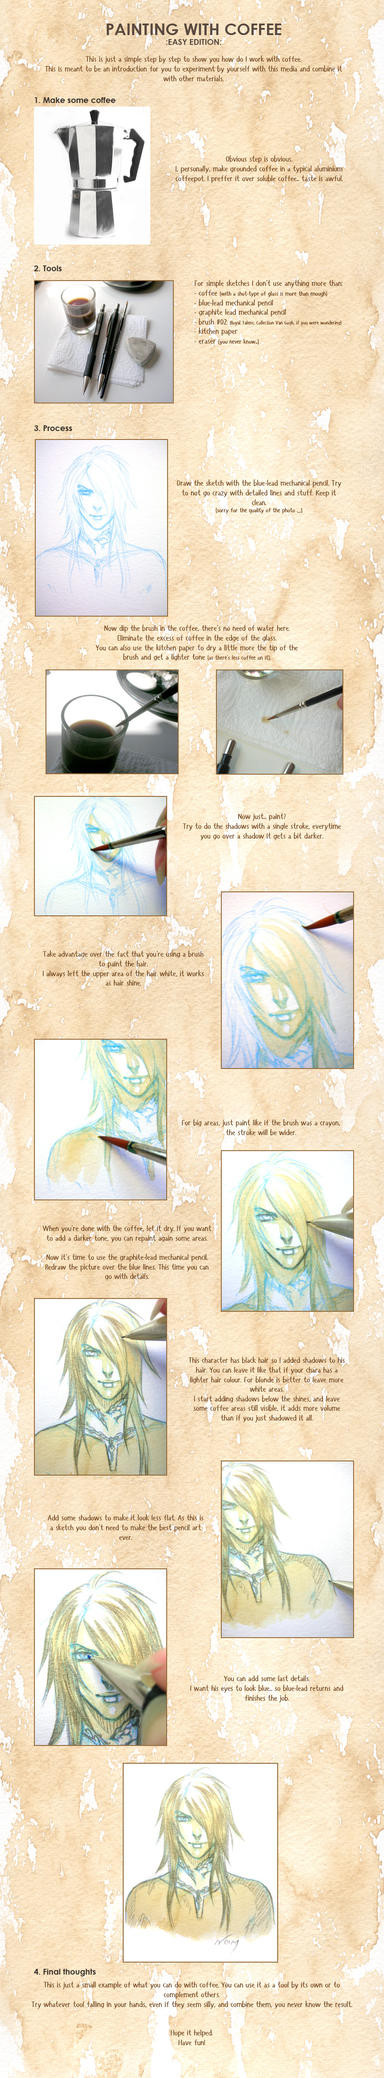 Coffee painting tutorial by noiry on deviantart for Painting with coffee grounds